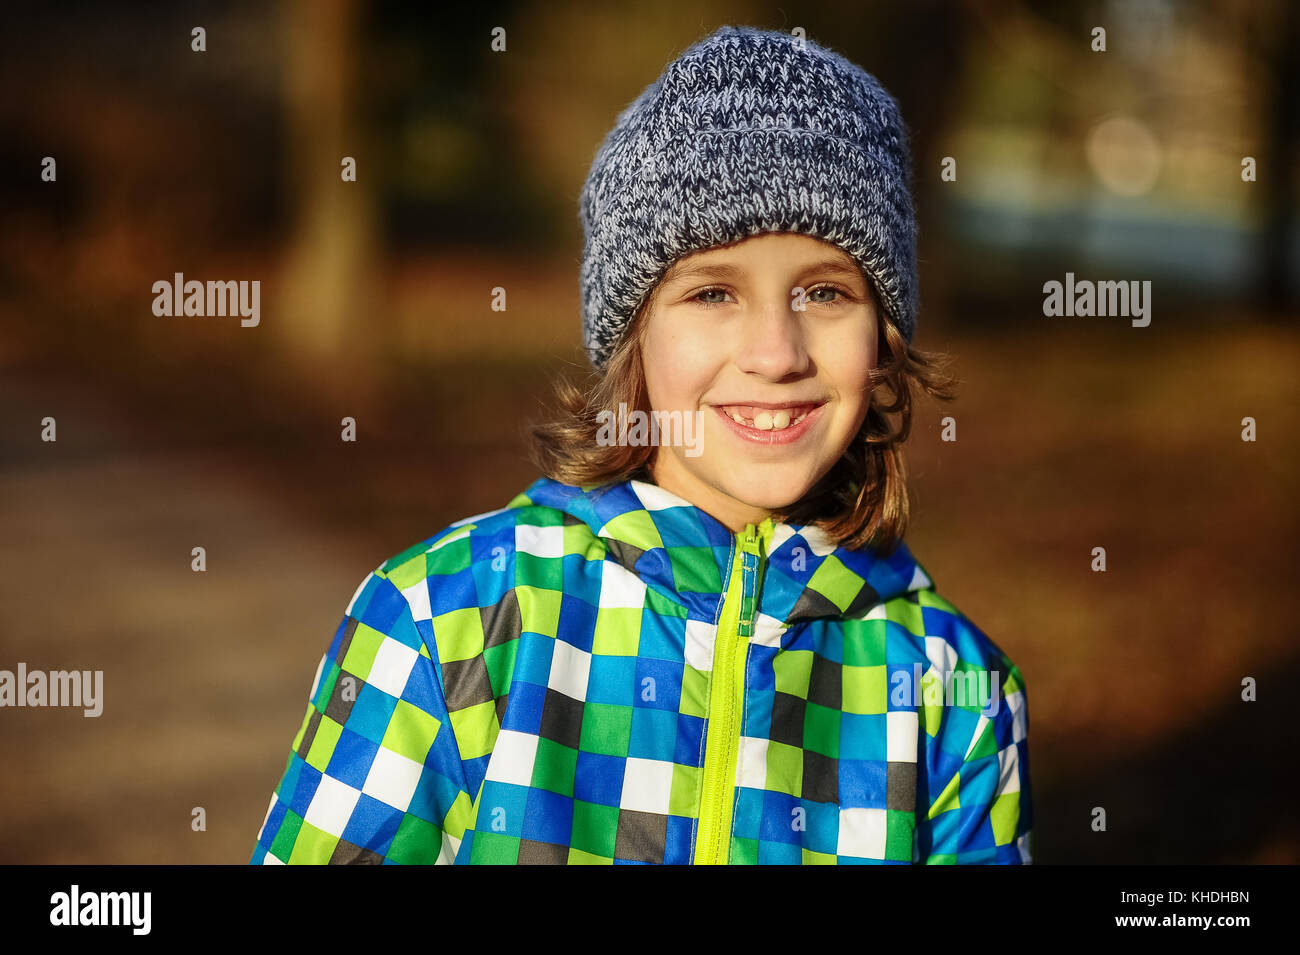 Portrait of a smiling boy of 9-10 years. The boy is dressed in a colorful jacket and a knitted cap. - Stock Image